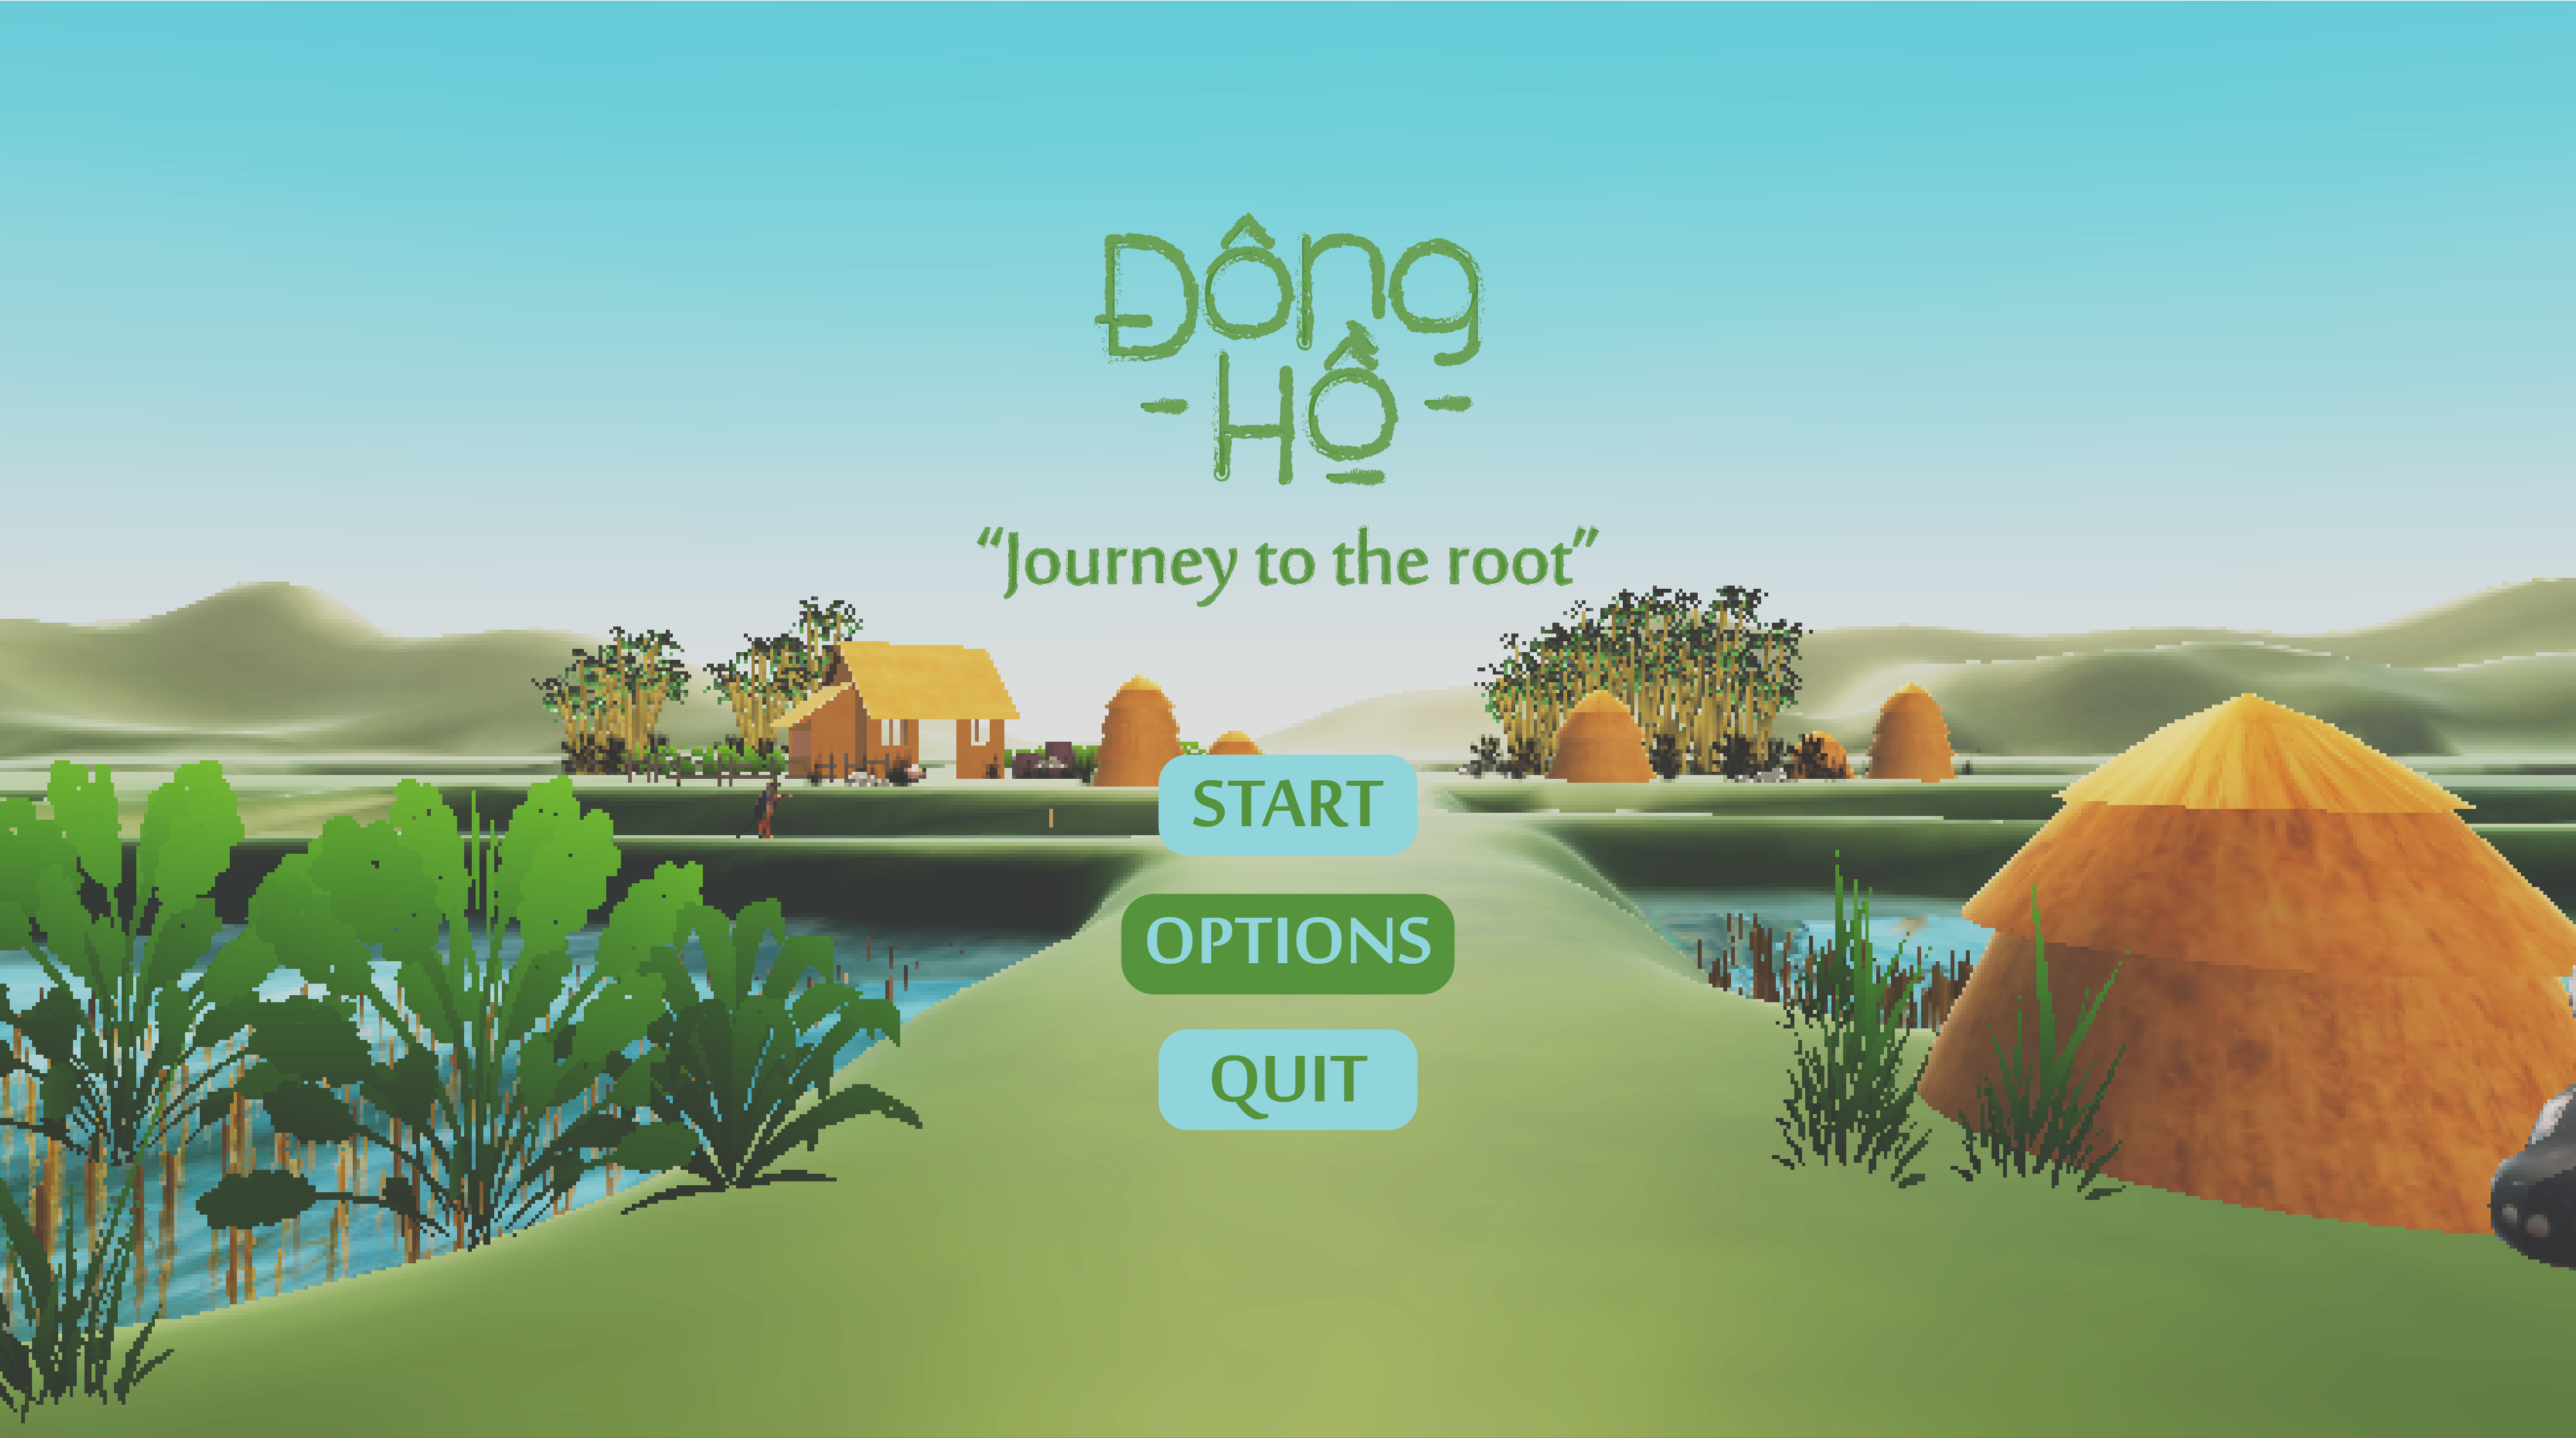 DONG HO - Journey to the root